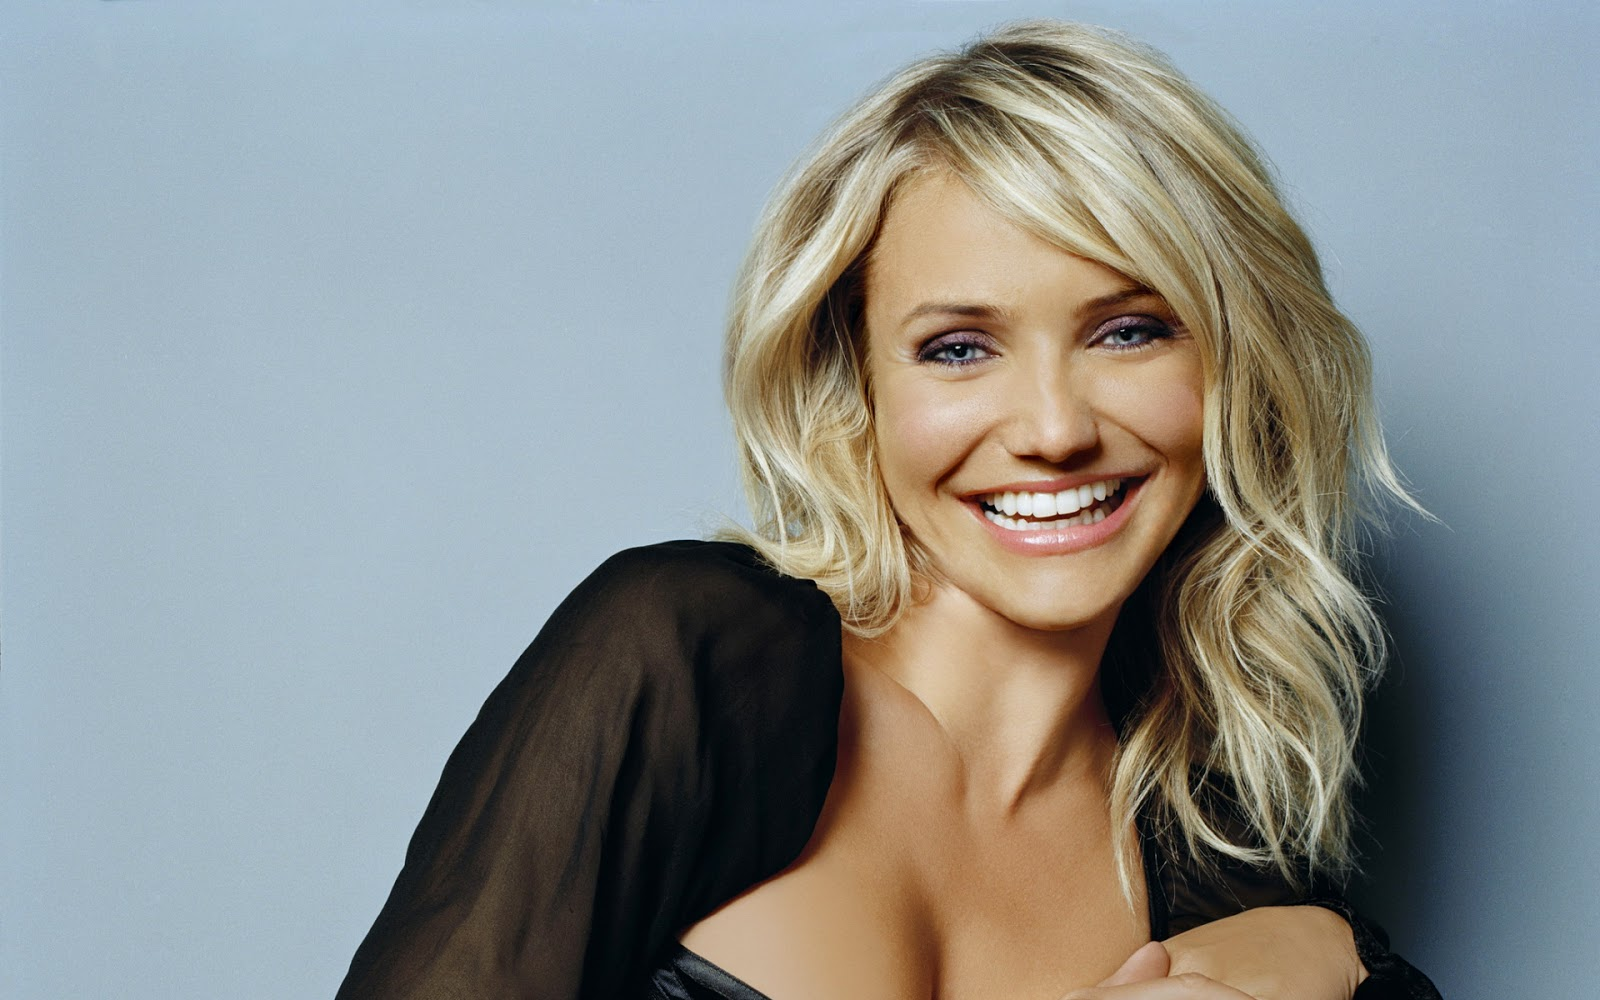 The Movies Of Cameron Diaz | The Ace Black BlogCameron Diaz Movies